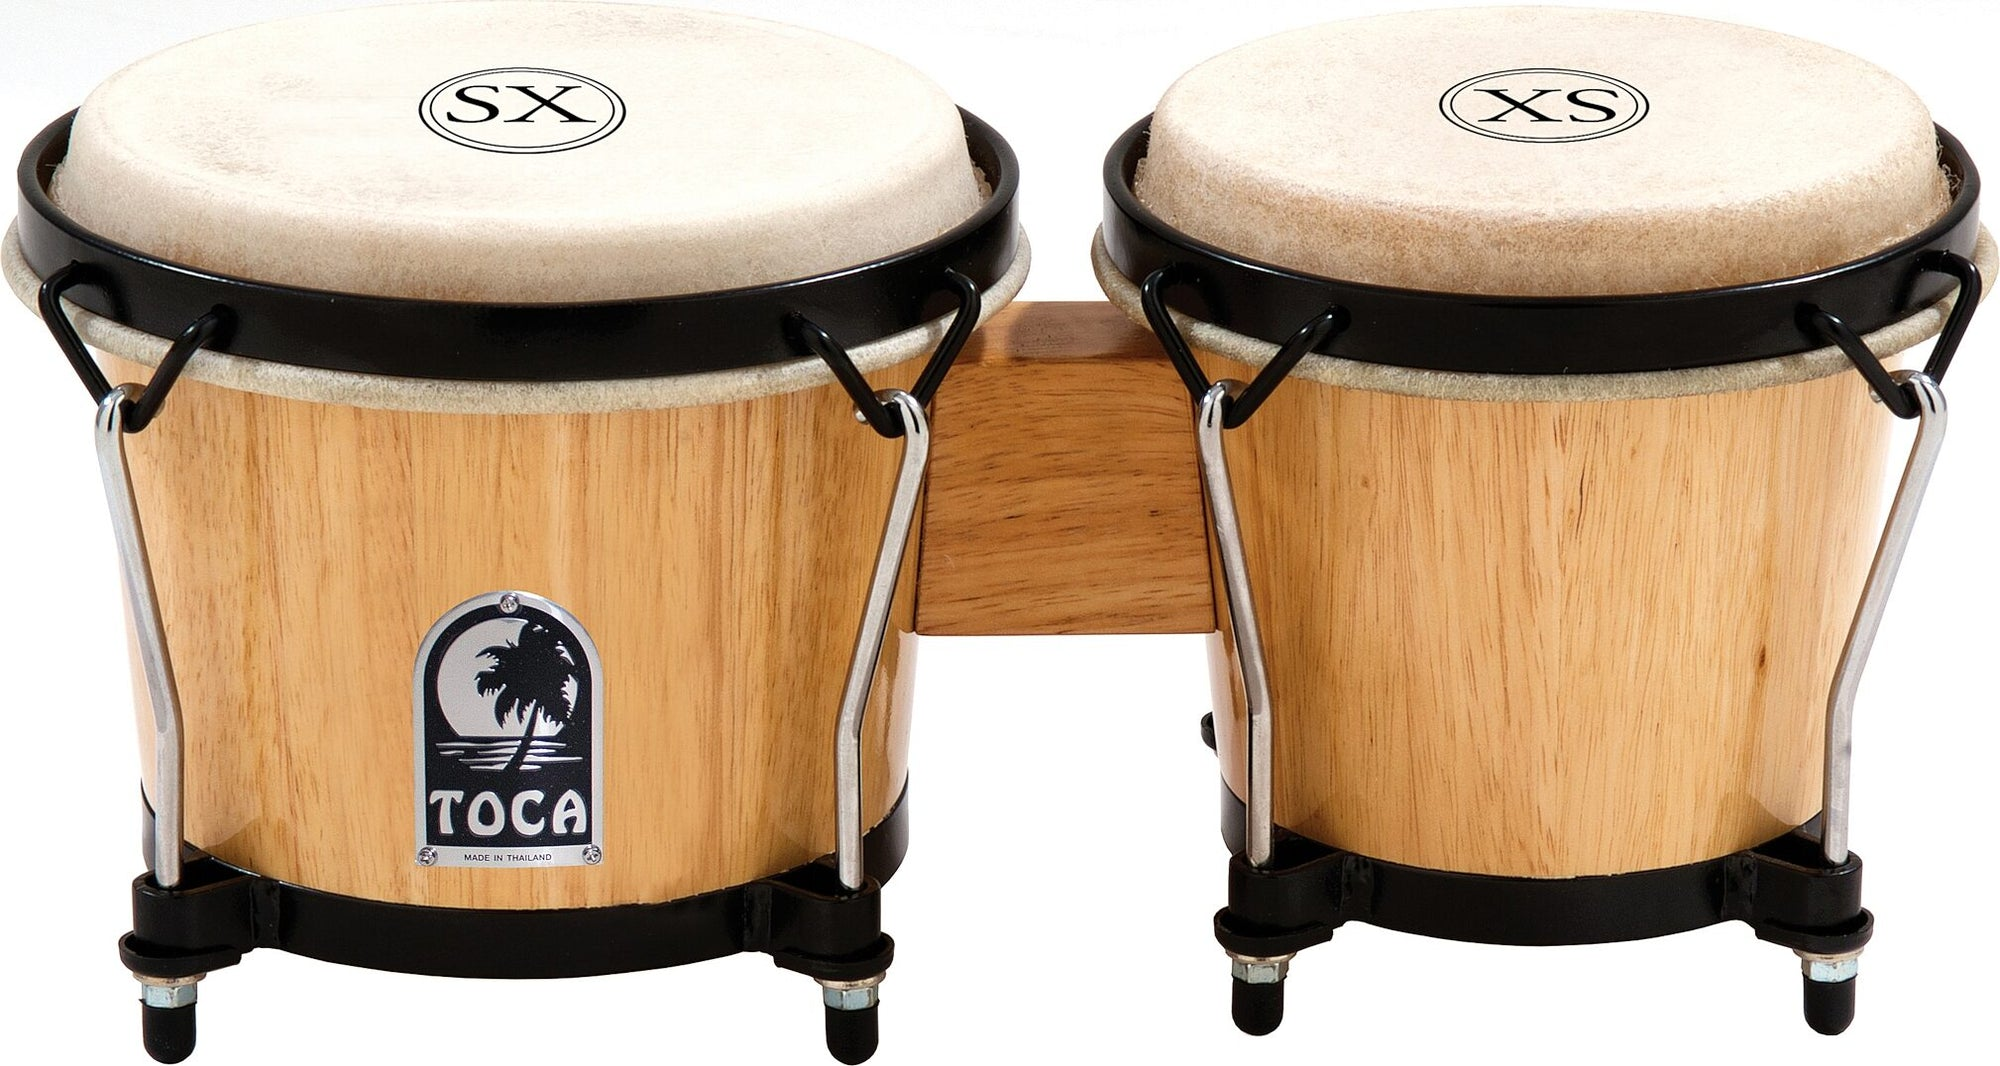 Toca 2101 SX Series Wood Bongos, Natural, 6 and 6 3/4 Inch